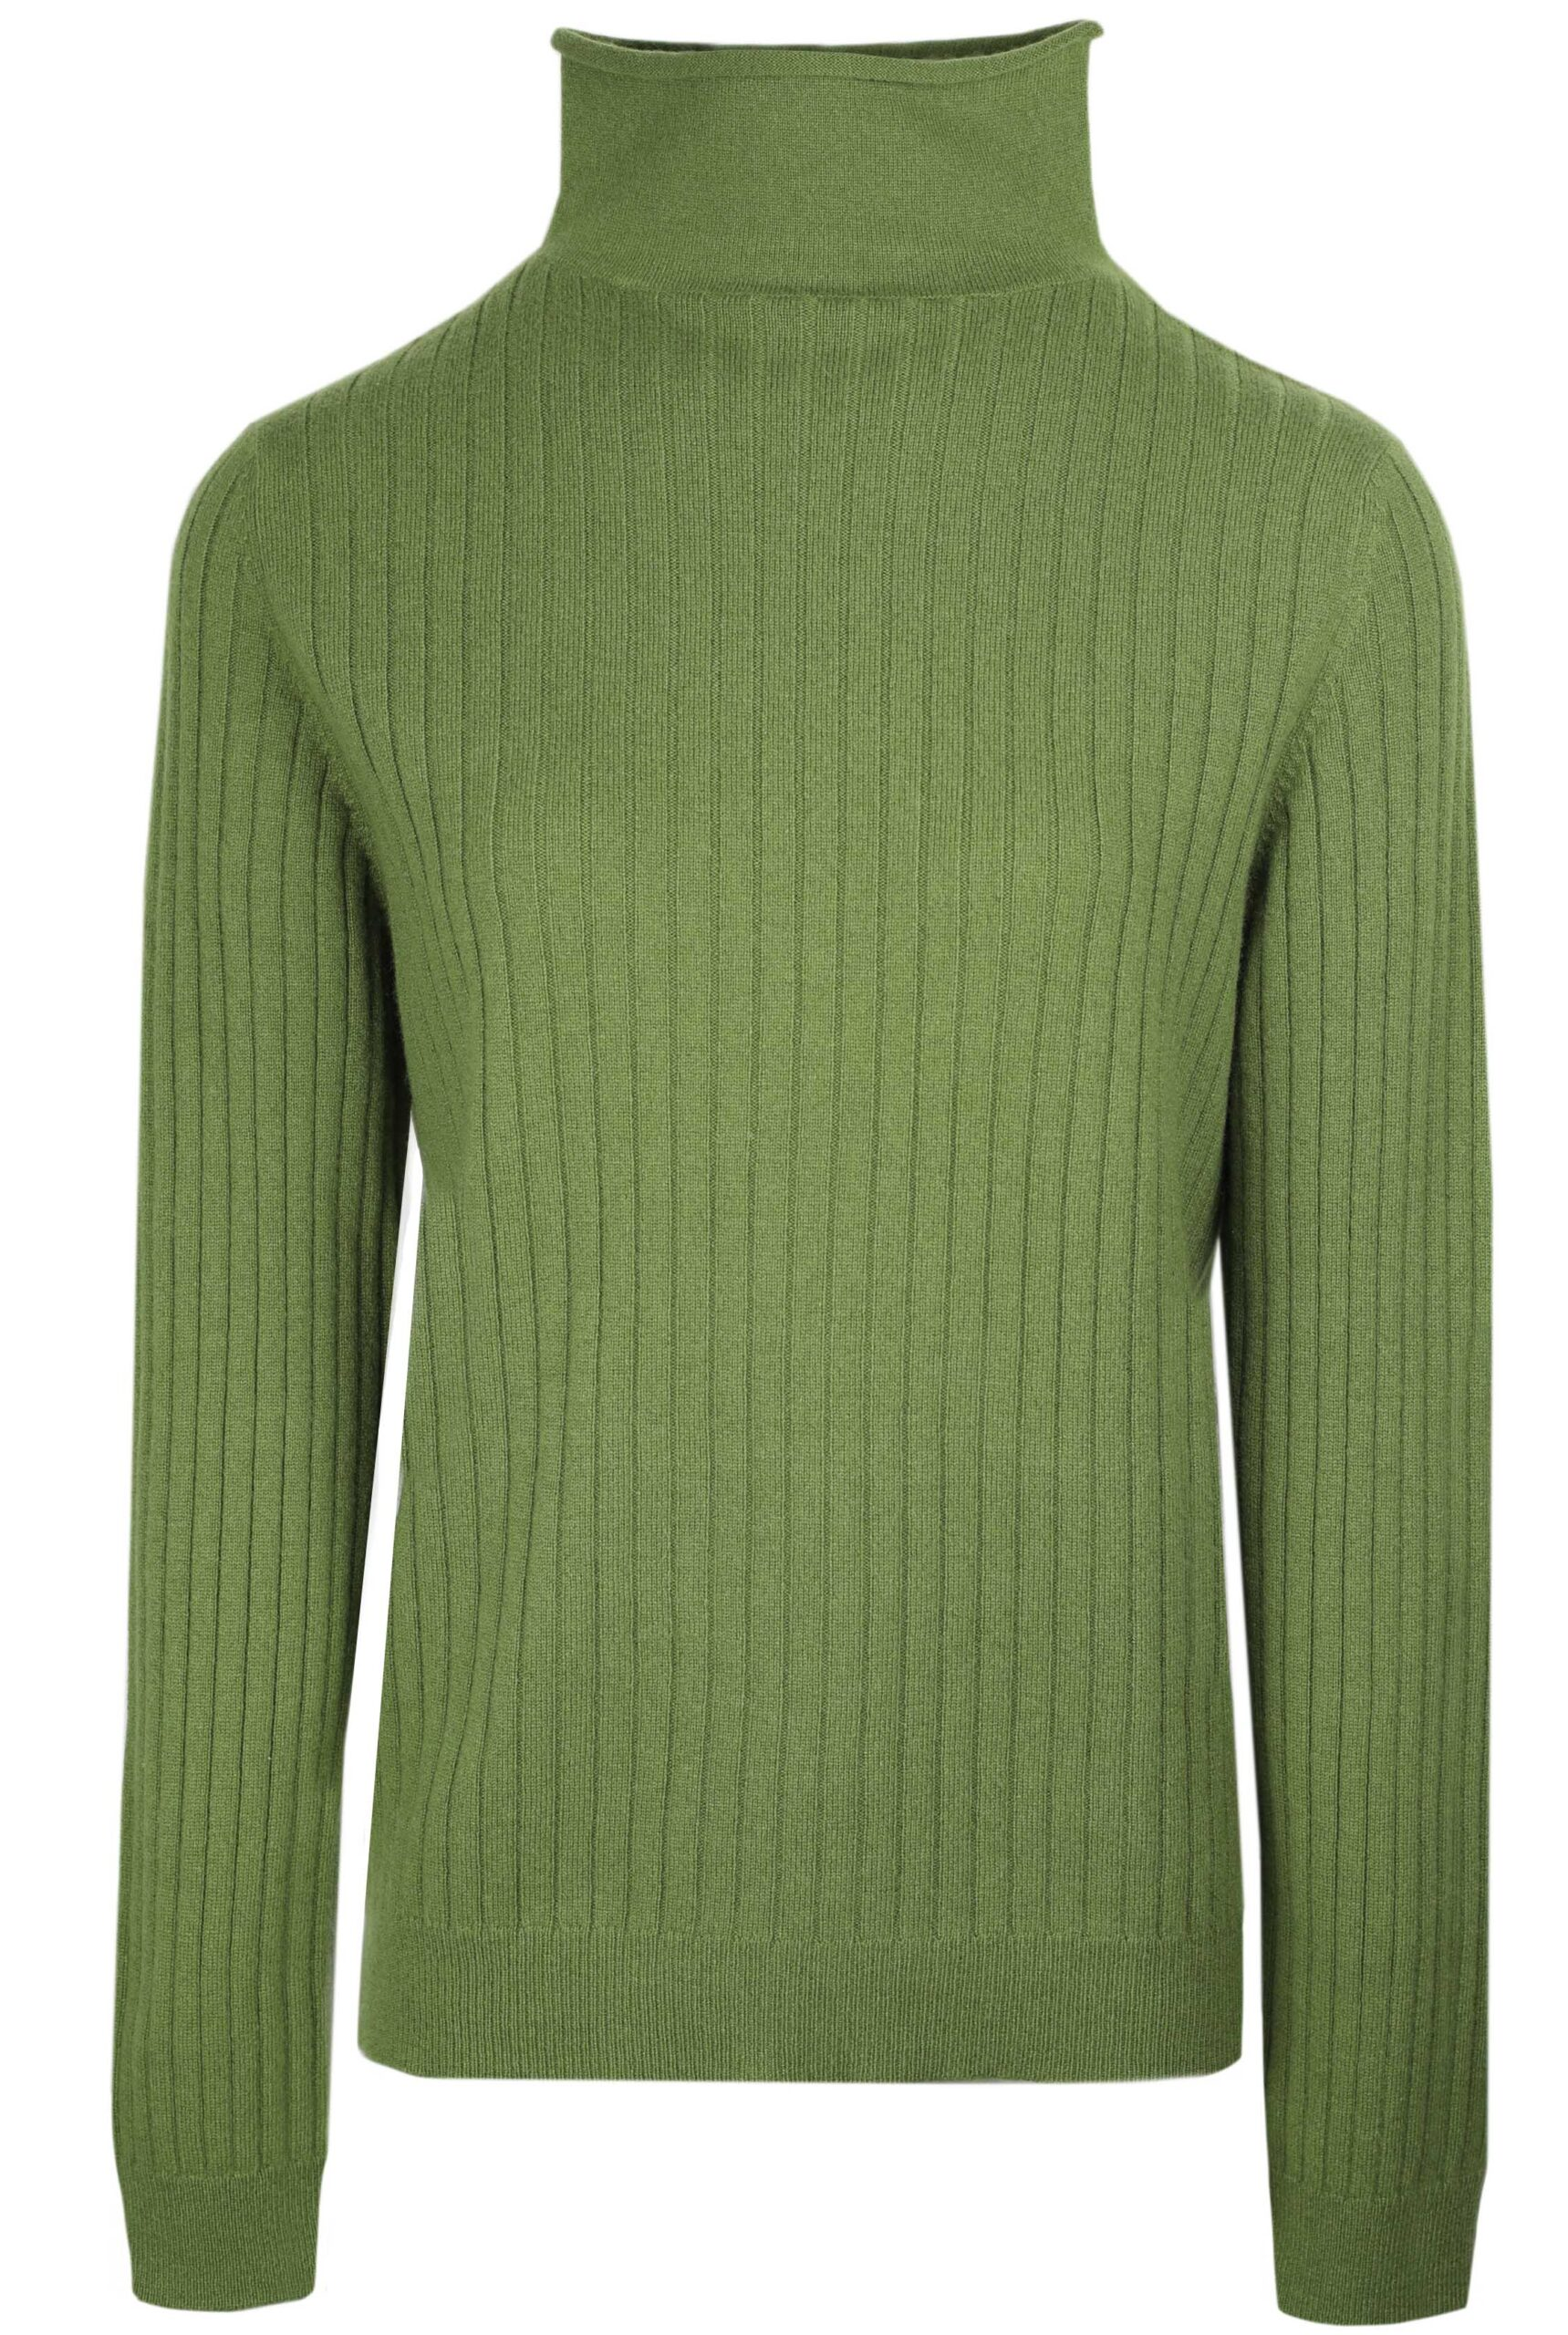 Fitted green roll neck cashmere sweater